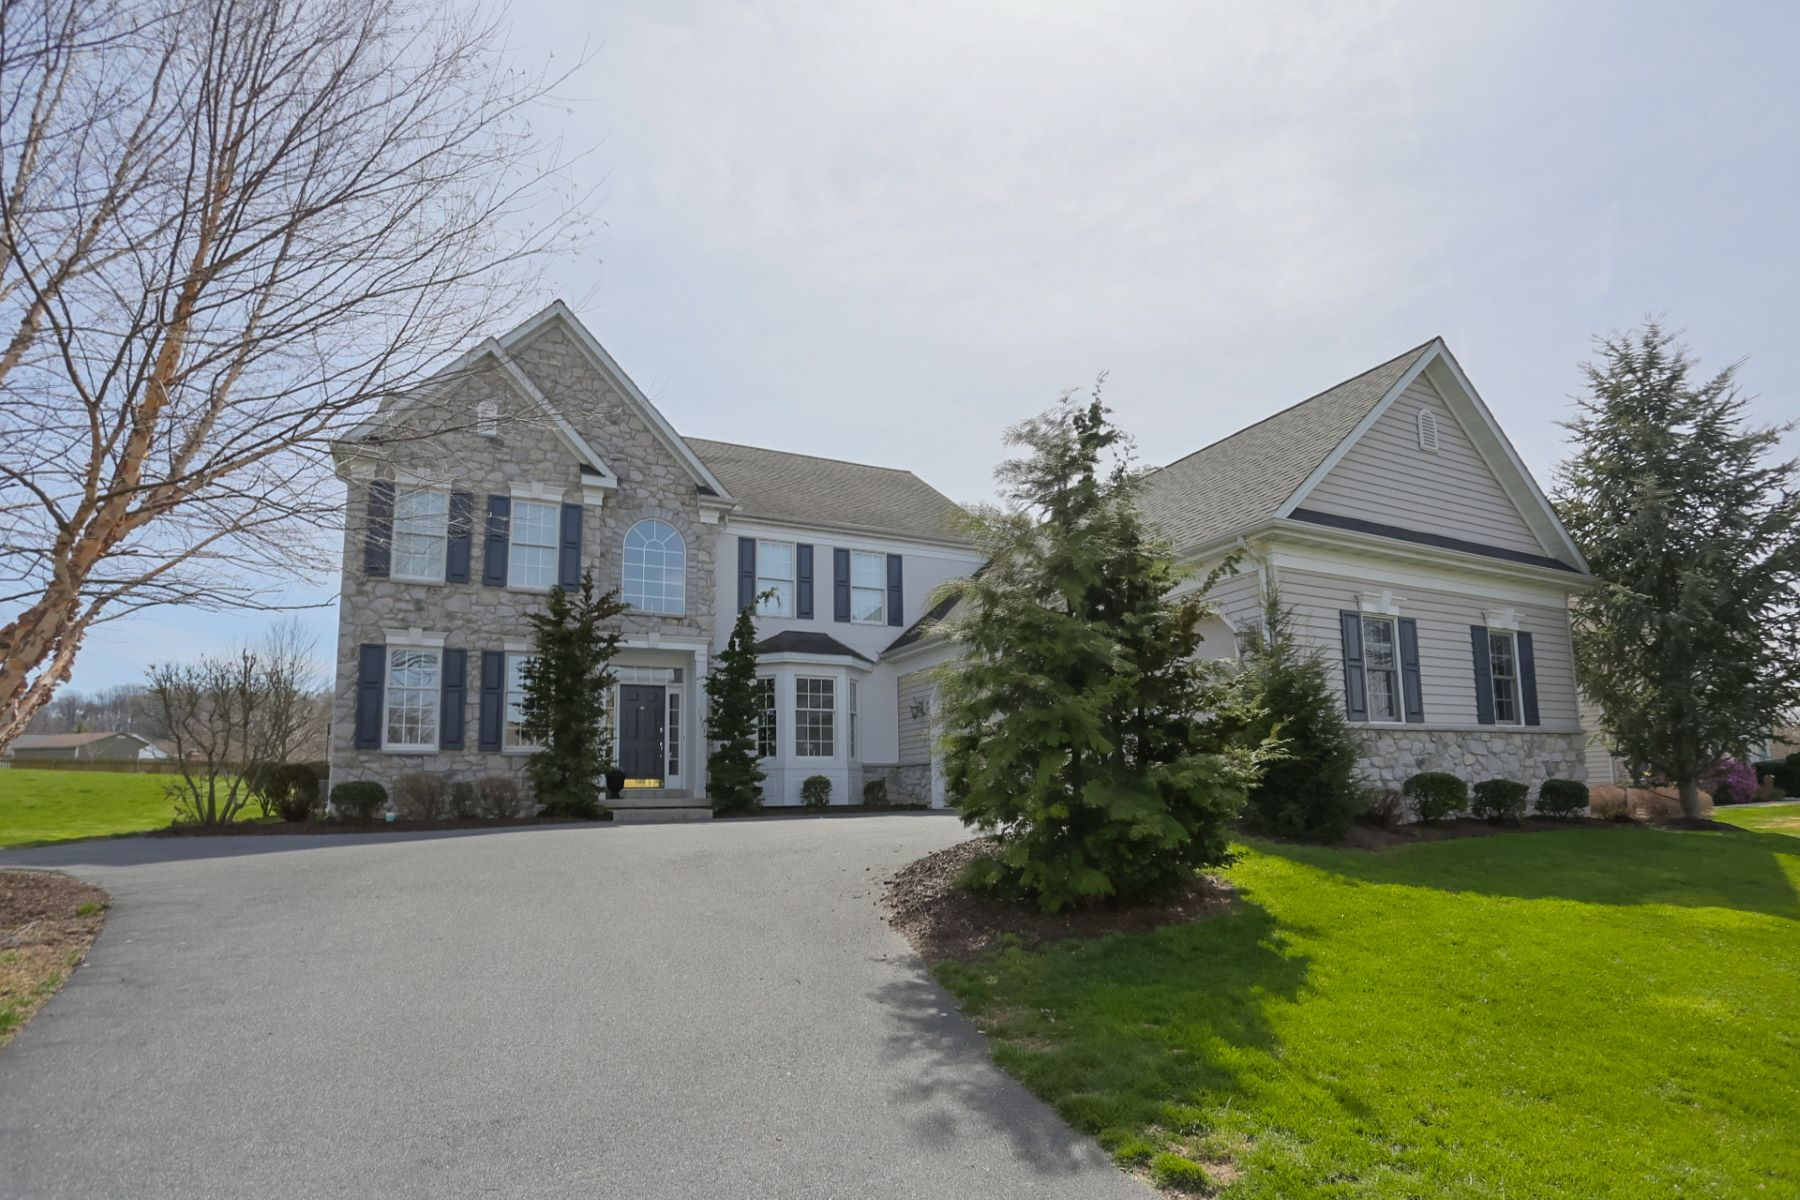 Single Family Home for Sale at 1351 Windemere 1351 Windemere Lane Landisville, Pennsylvania 17538 United States